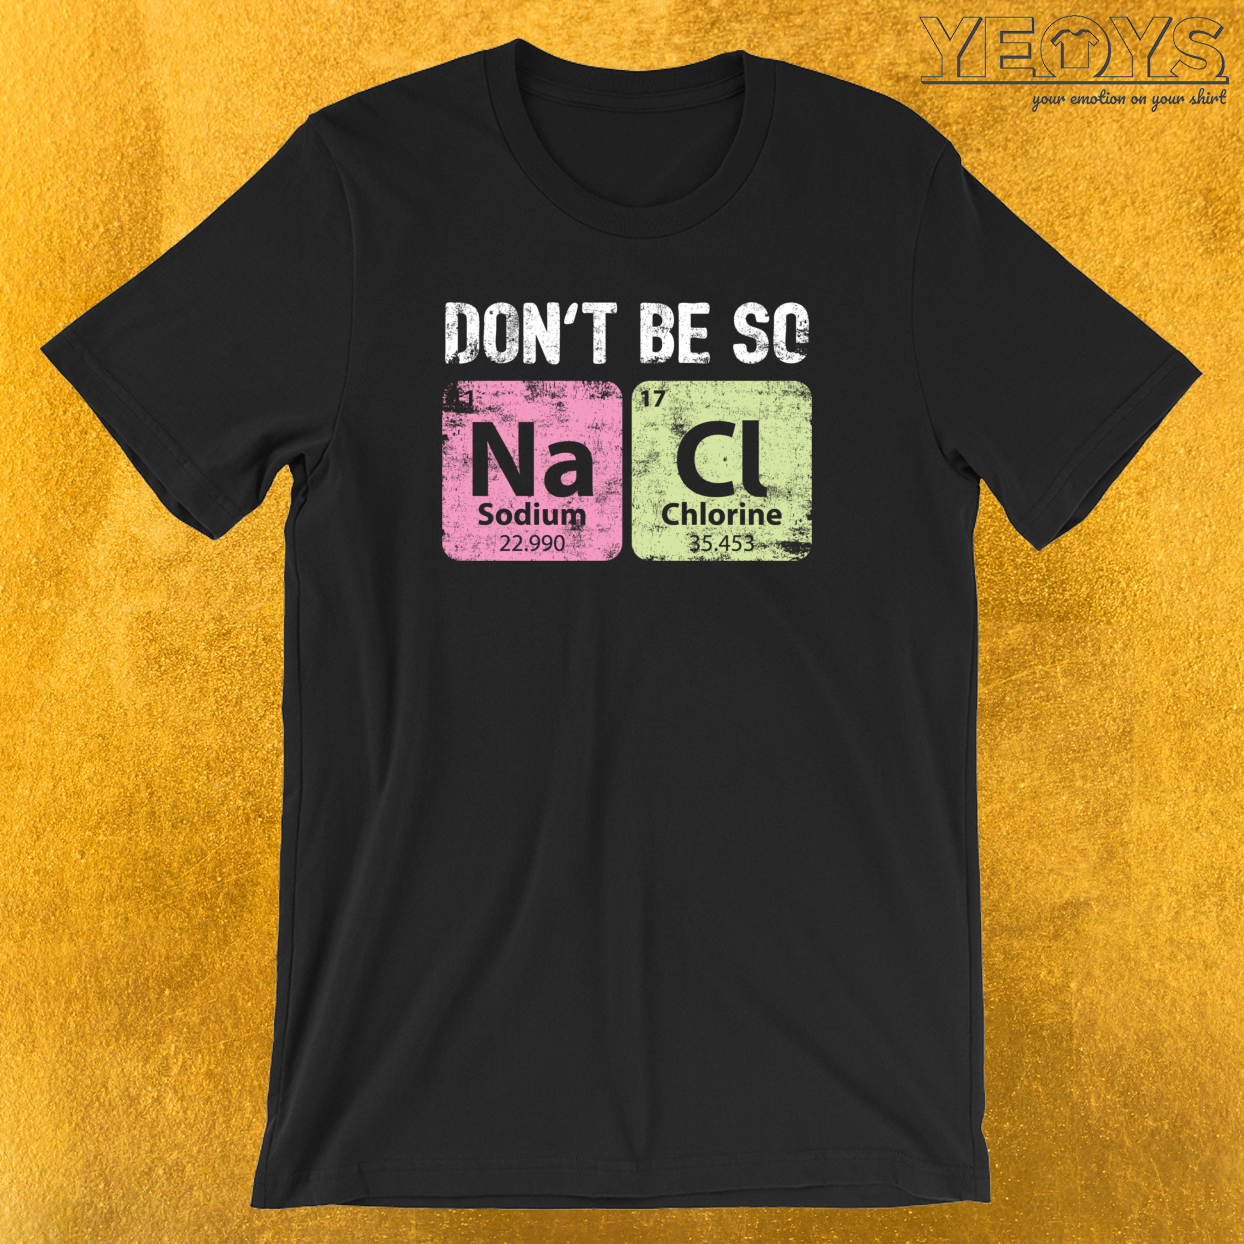 Don't Be So Salty T-Shirt